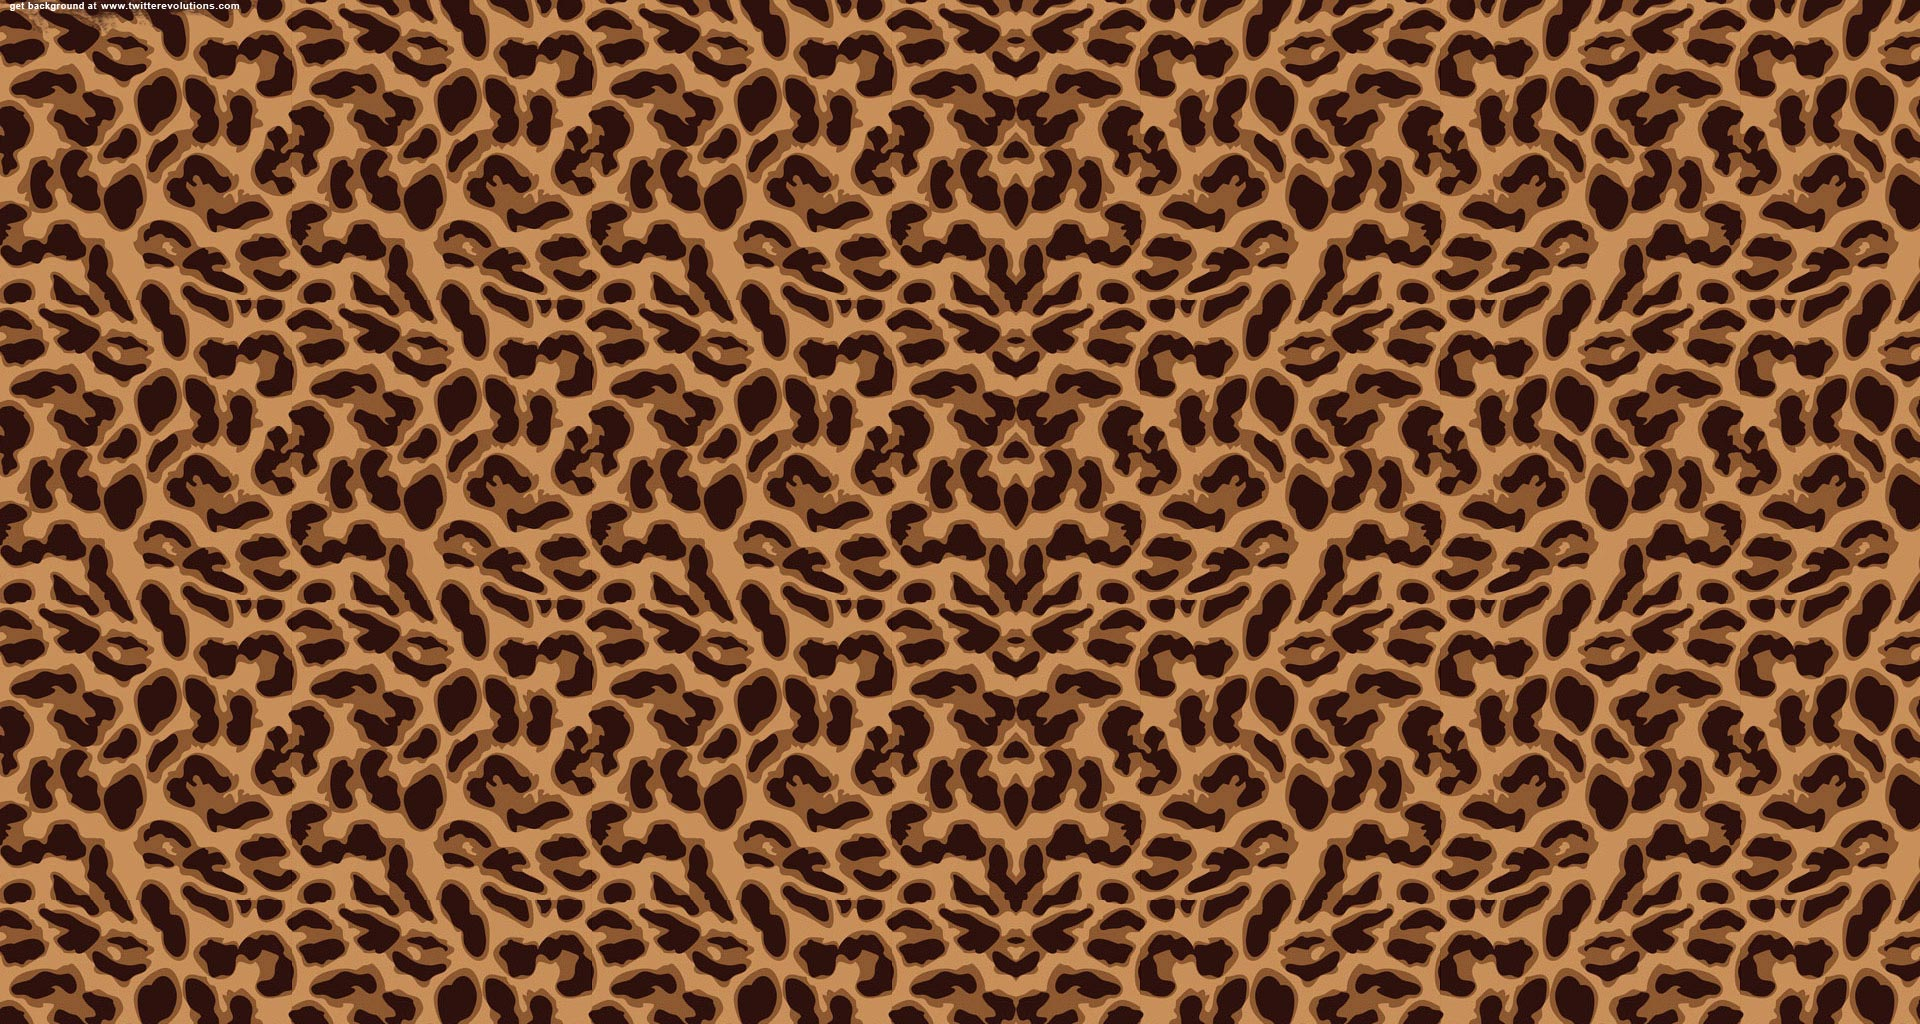 gallery for cheetah print twitter backgrounds